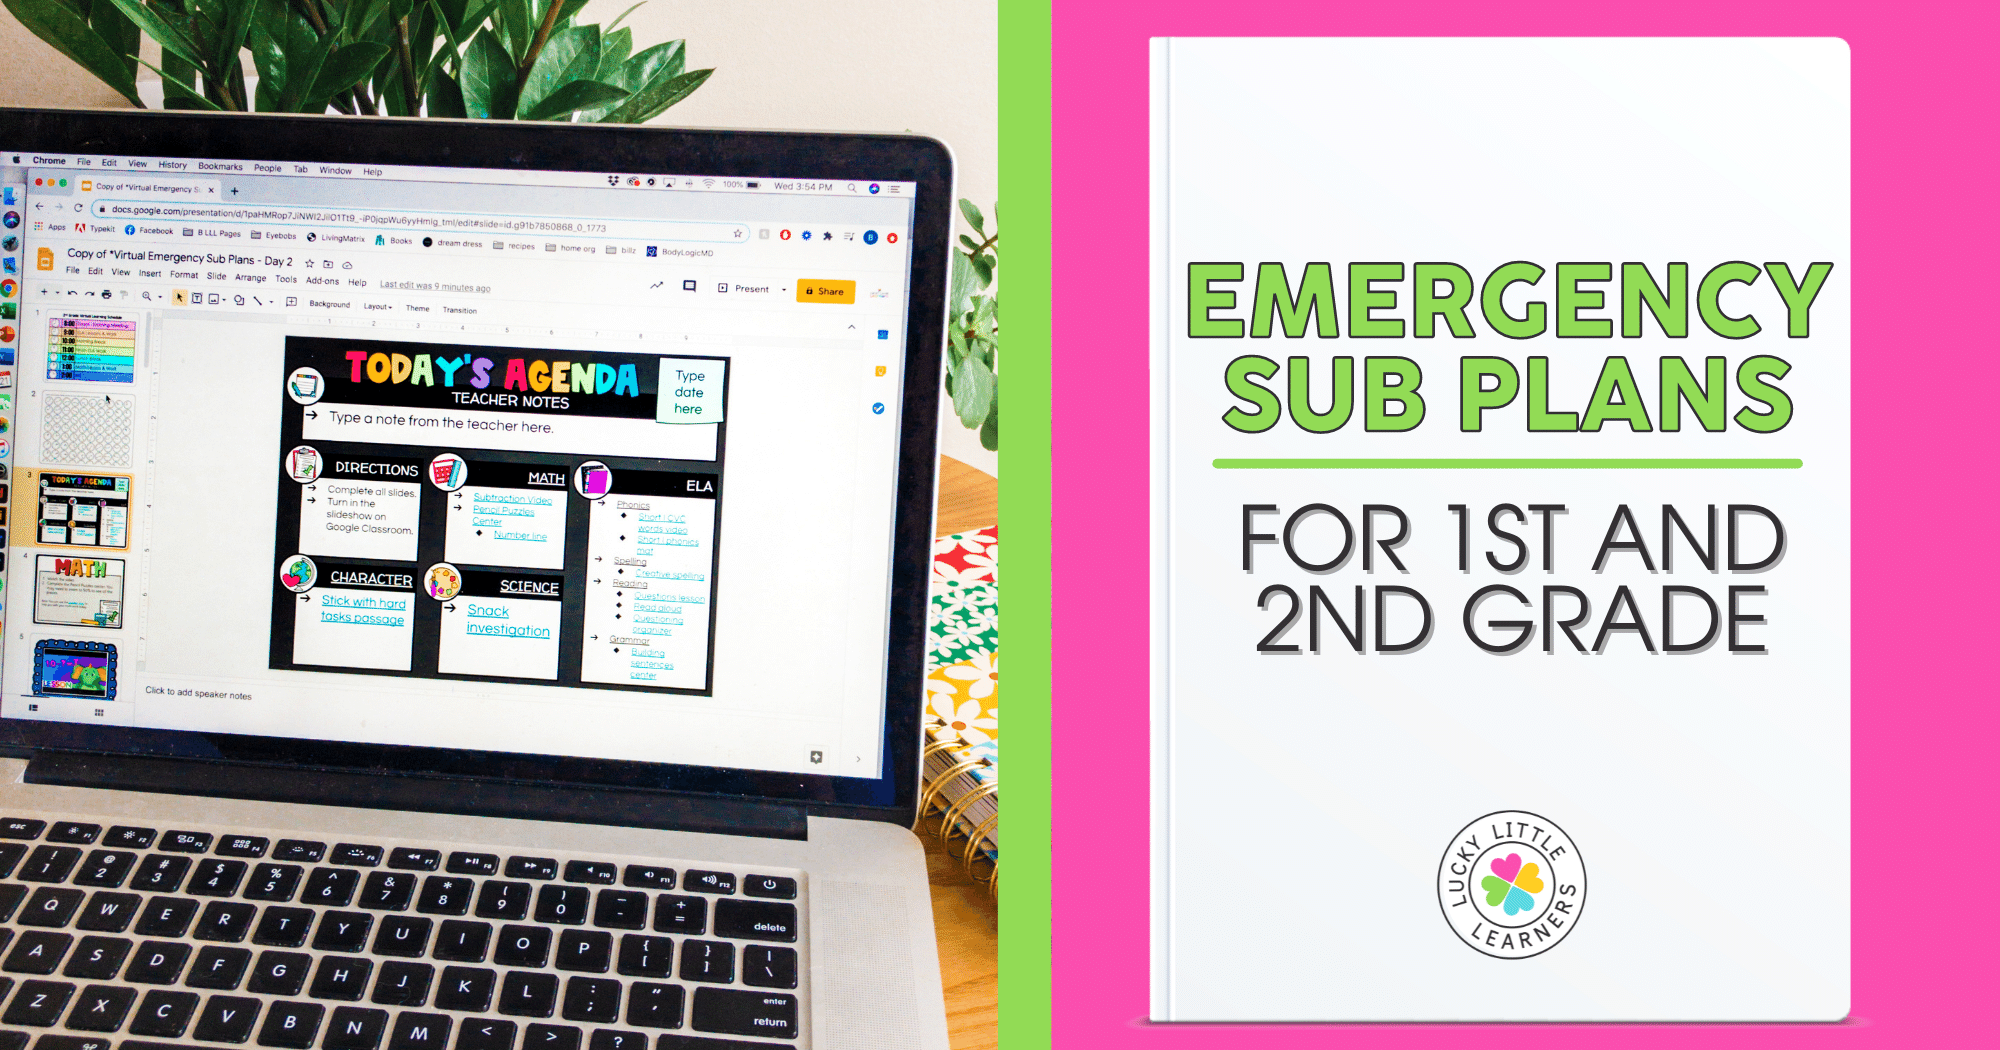 emergency sub plans and ideas for 1st and 2nd grade